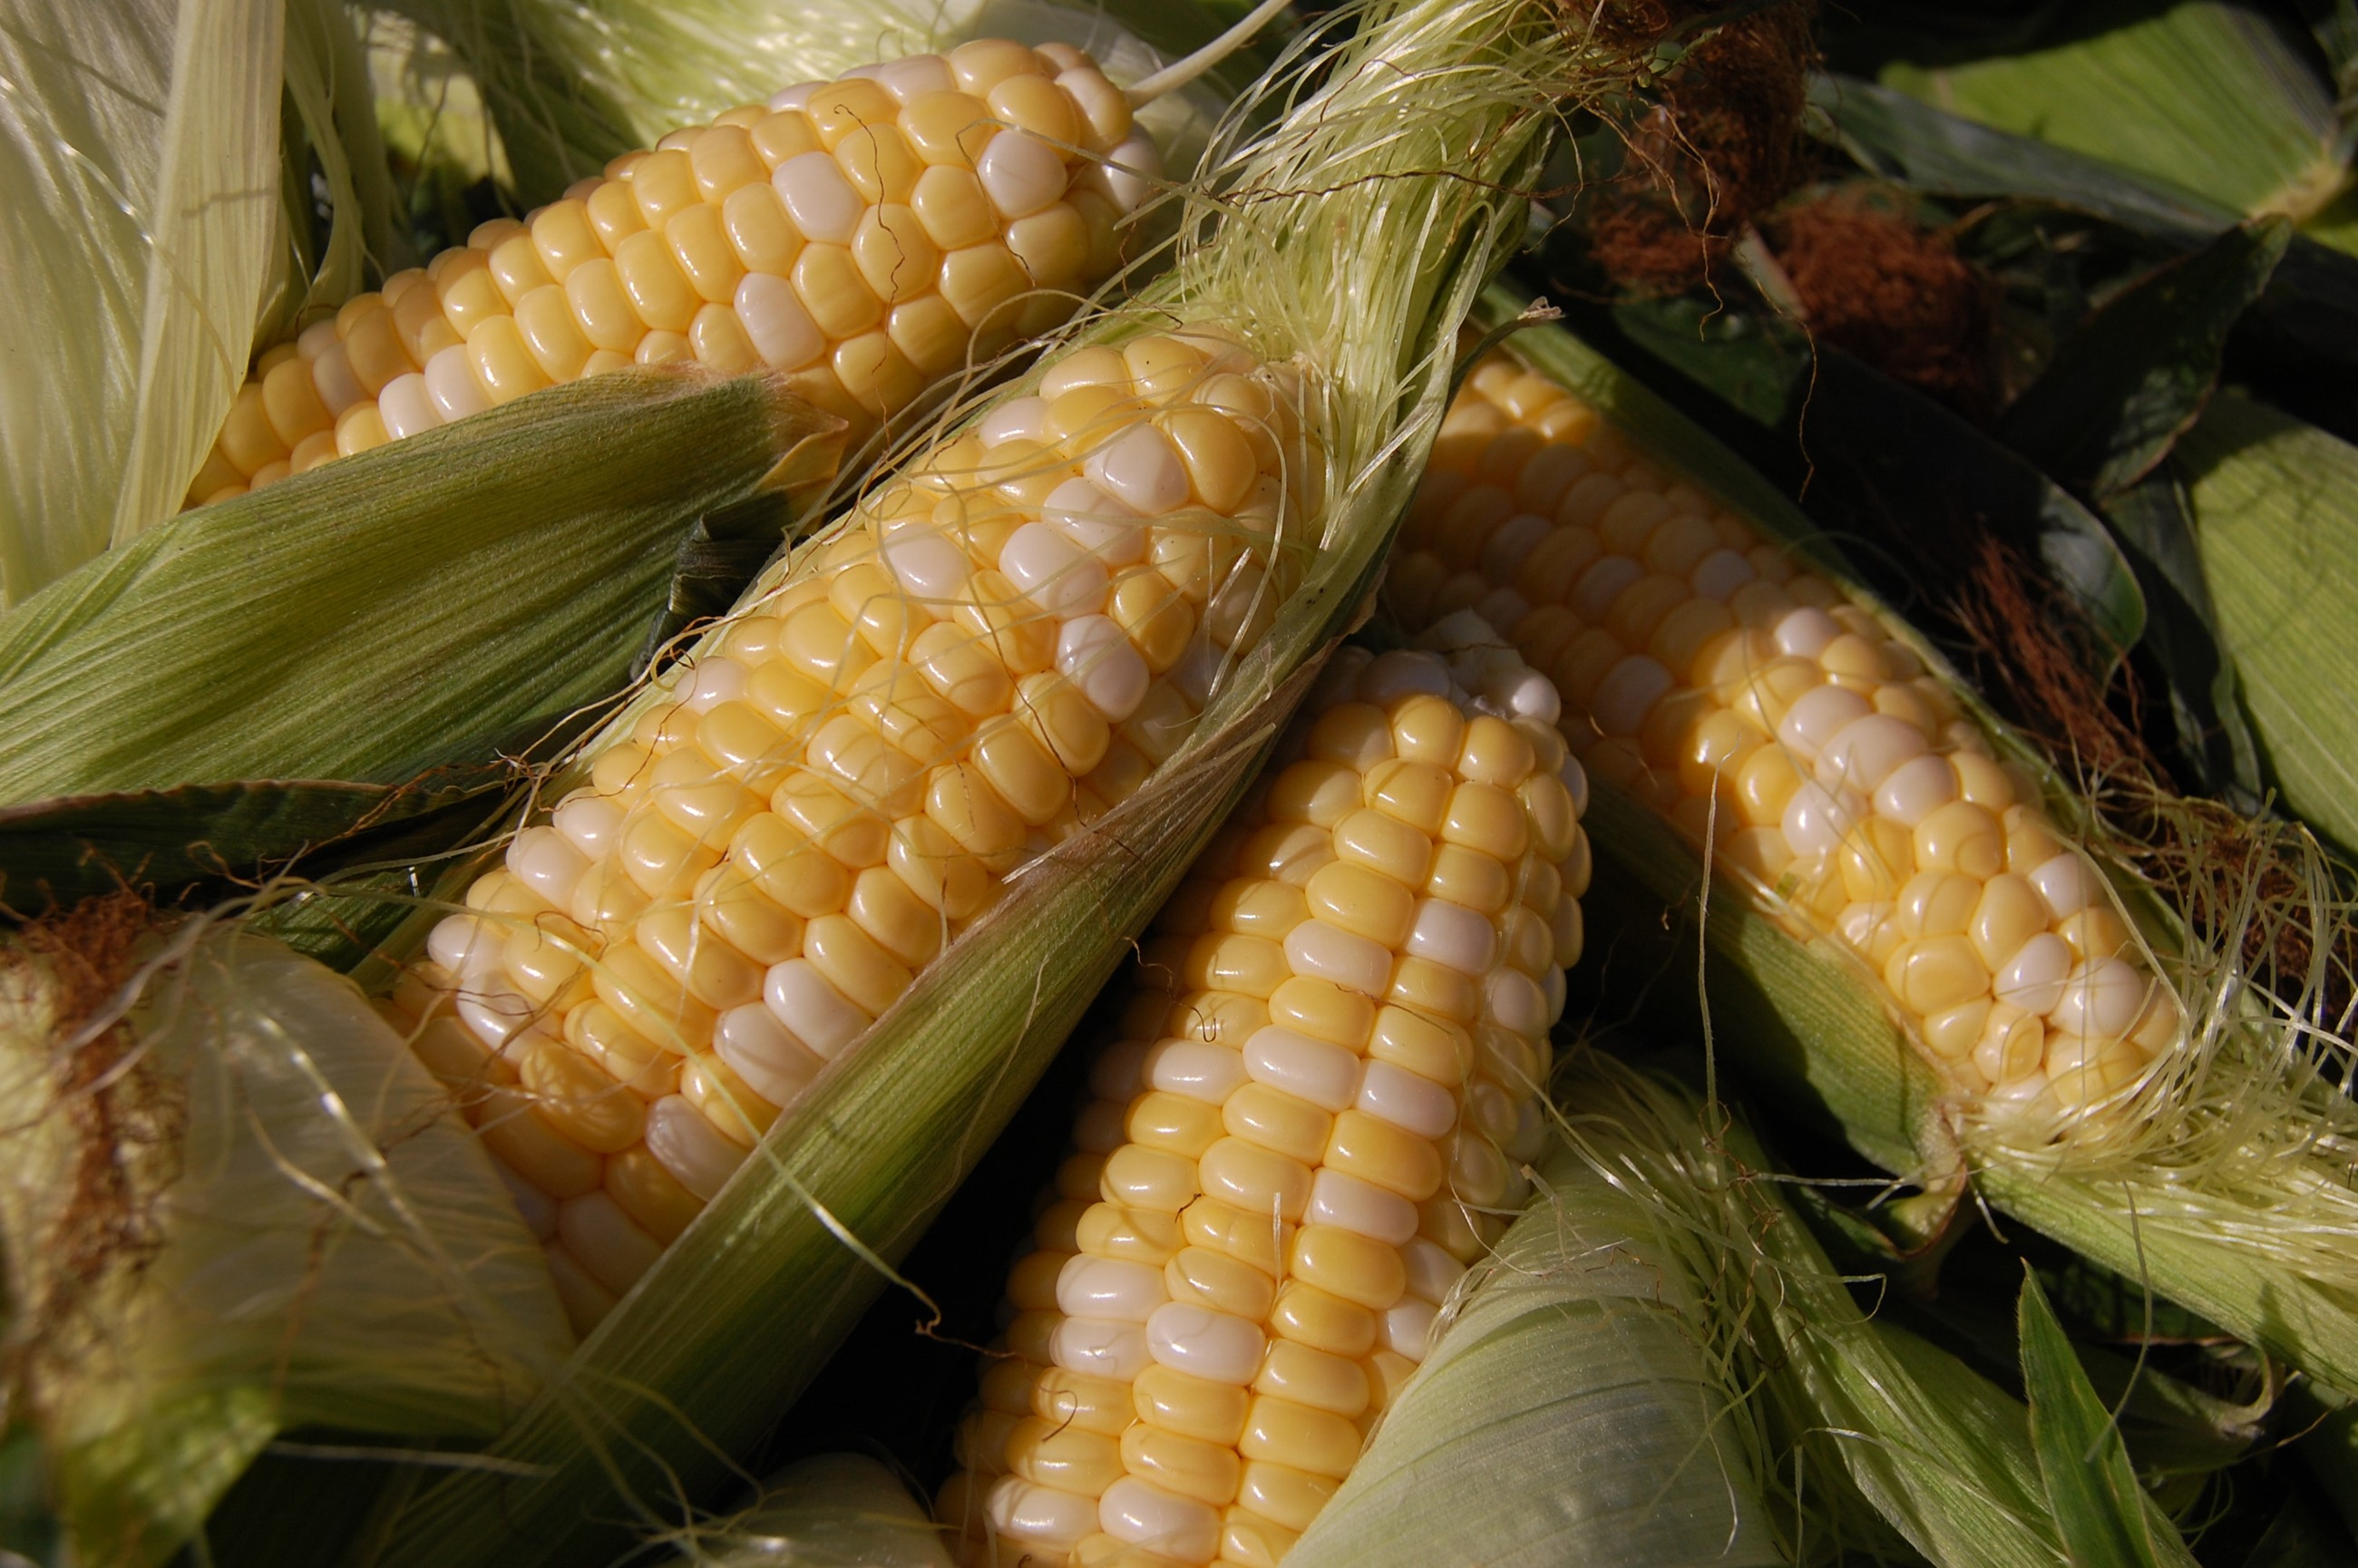 Cobs of corn